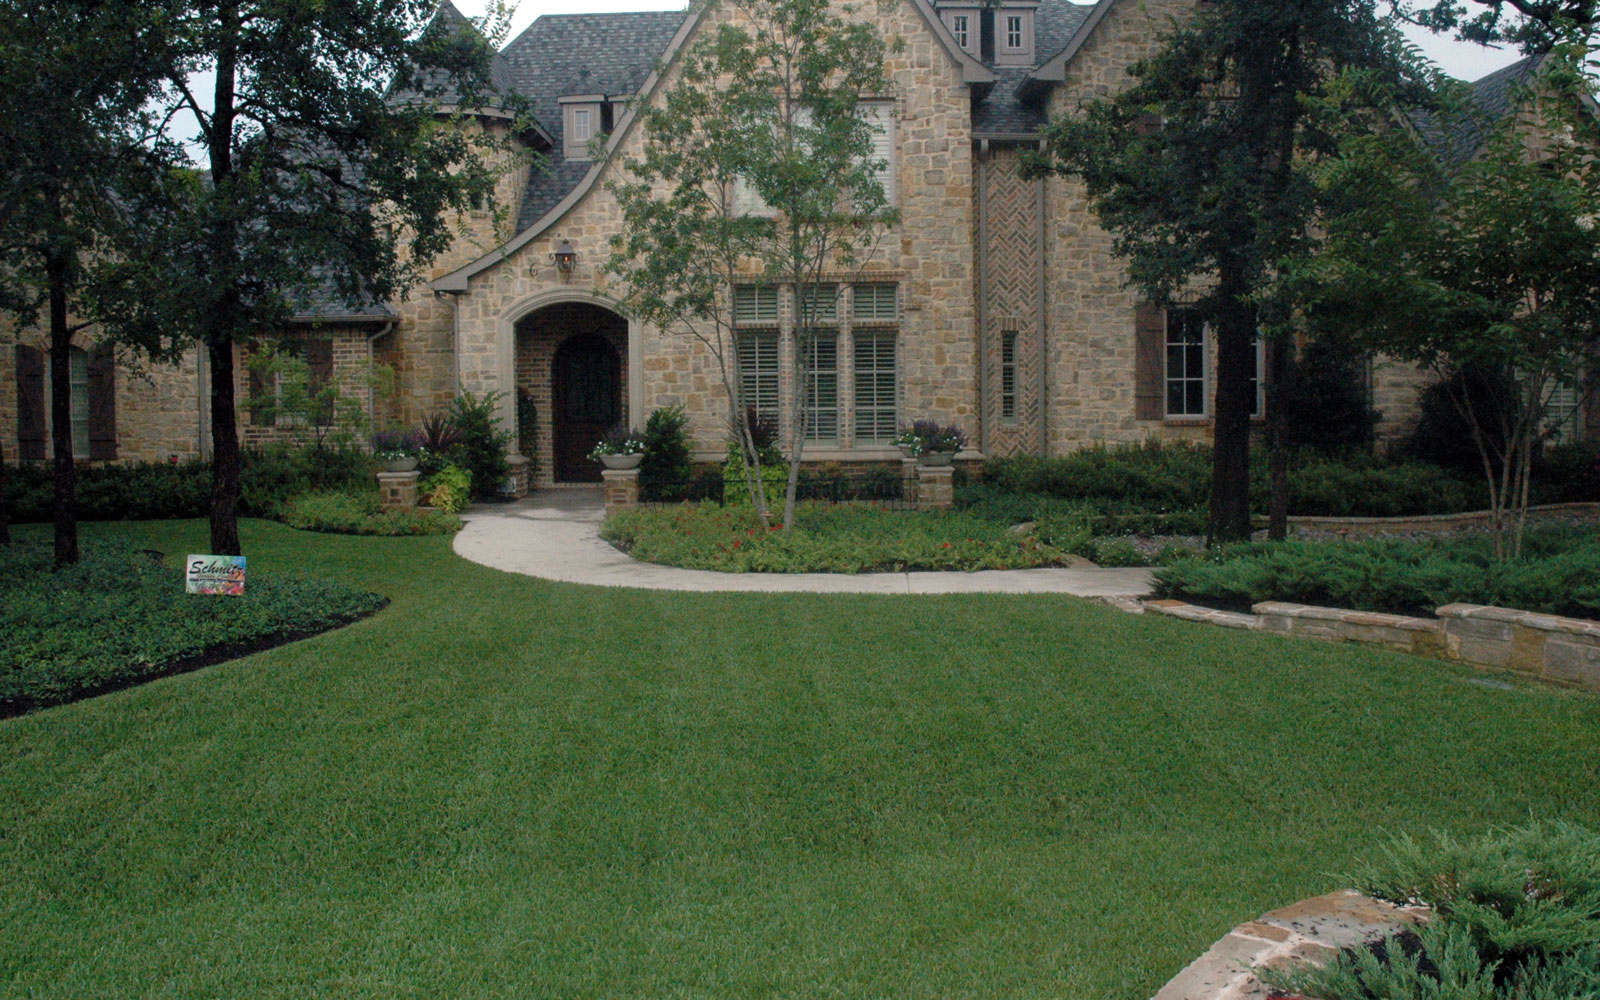 Anic lawn care flower mound tx 4k wallpapers for Lawn and garden care services